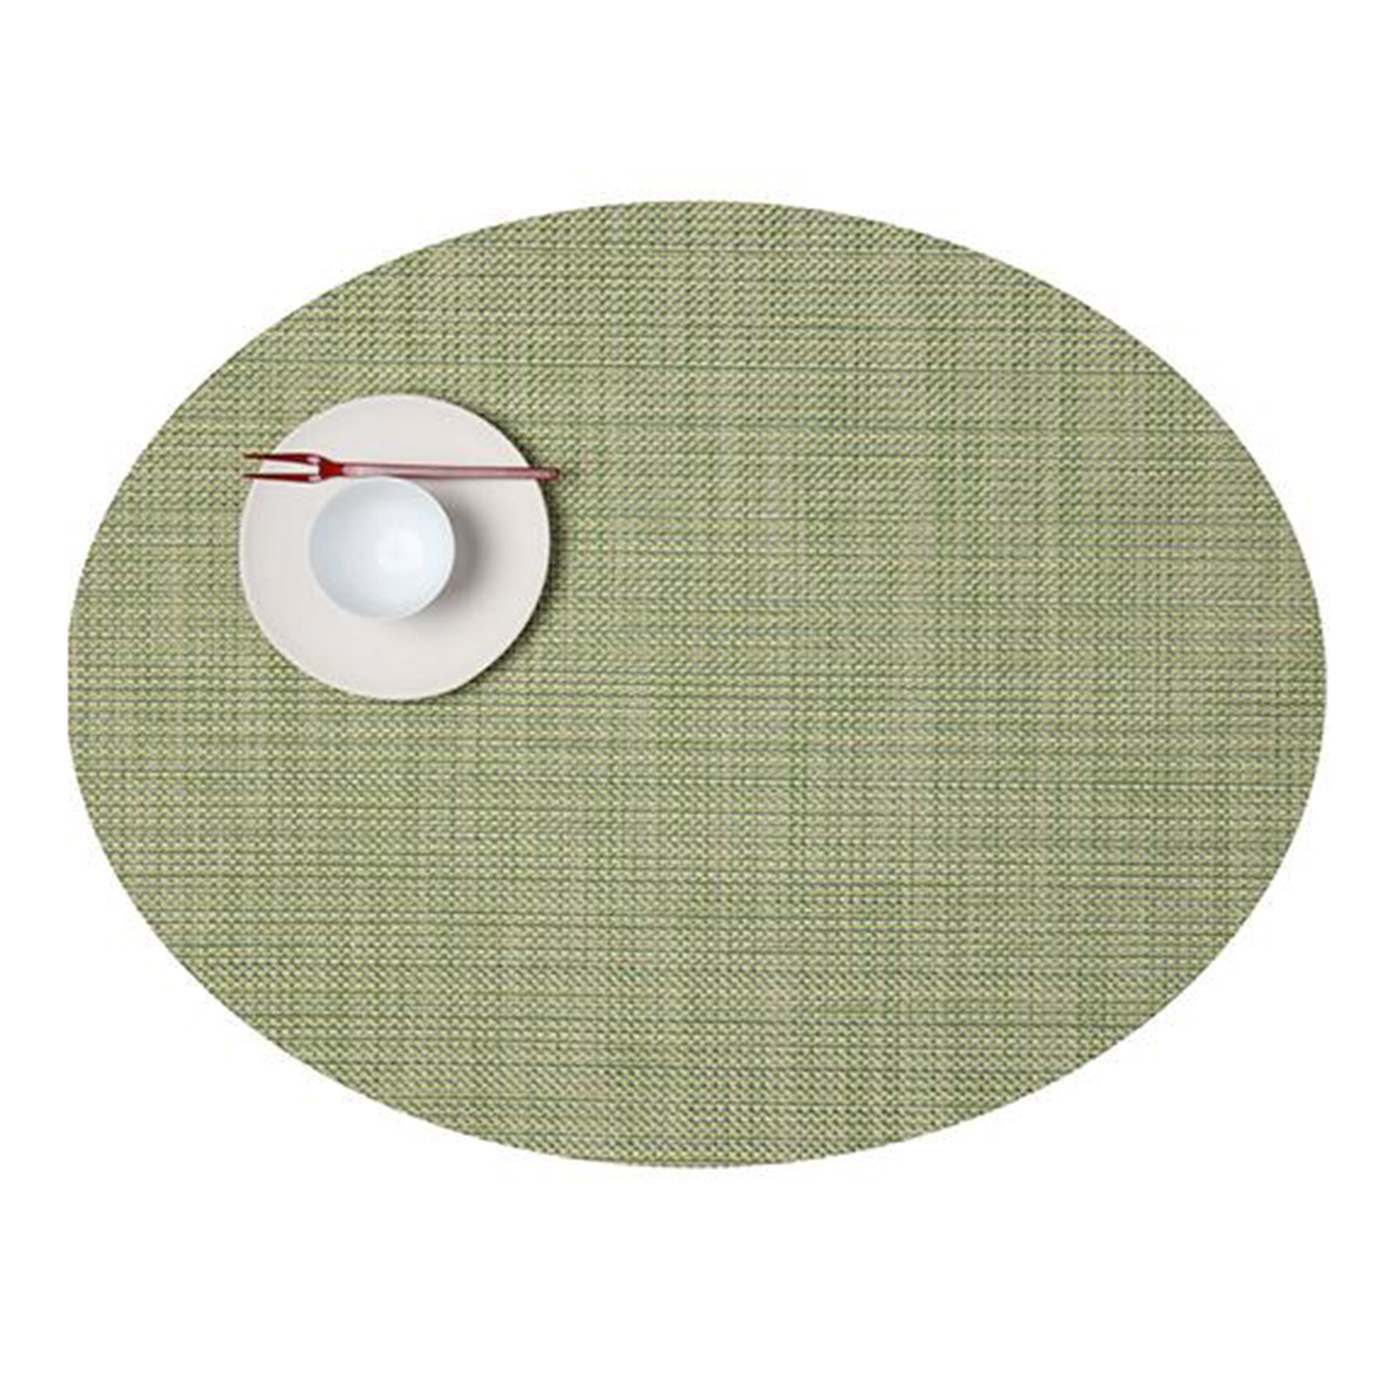 Chilewich Placemats Mini Basketweave Kitchen Amp Home